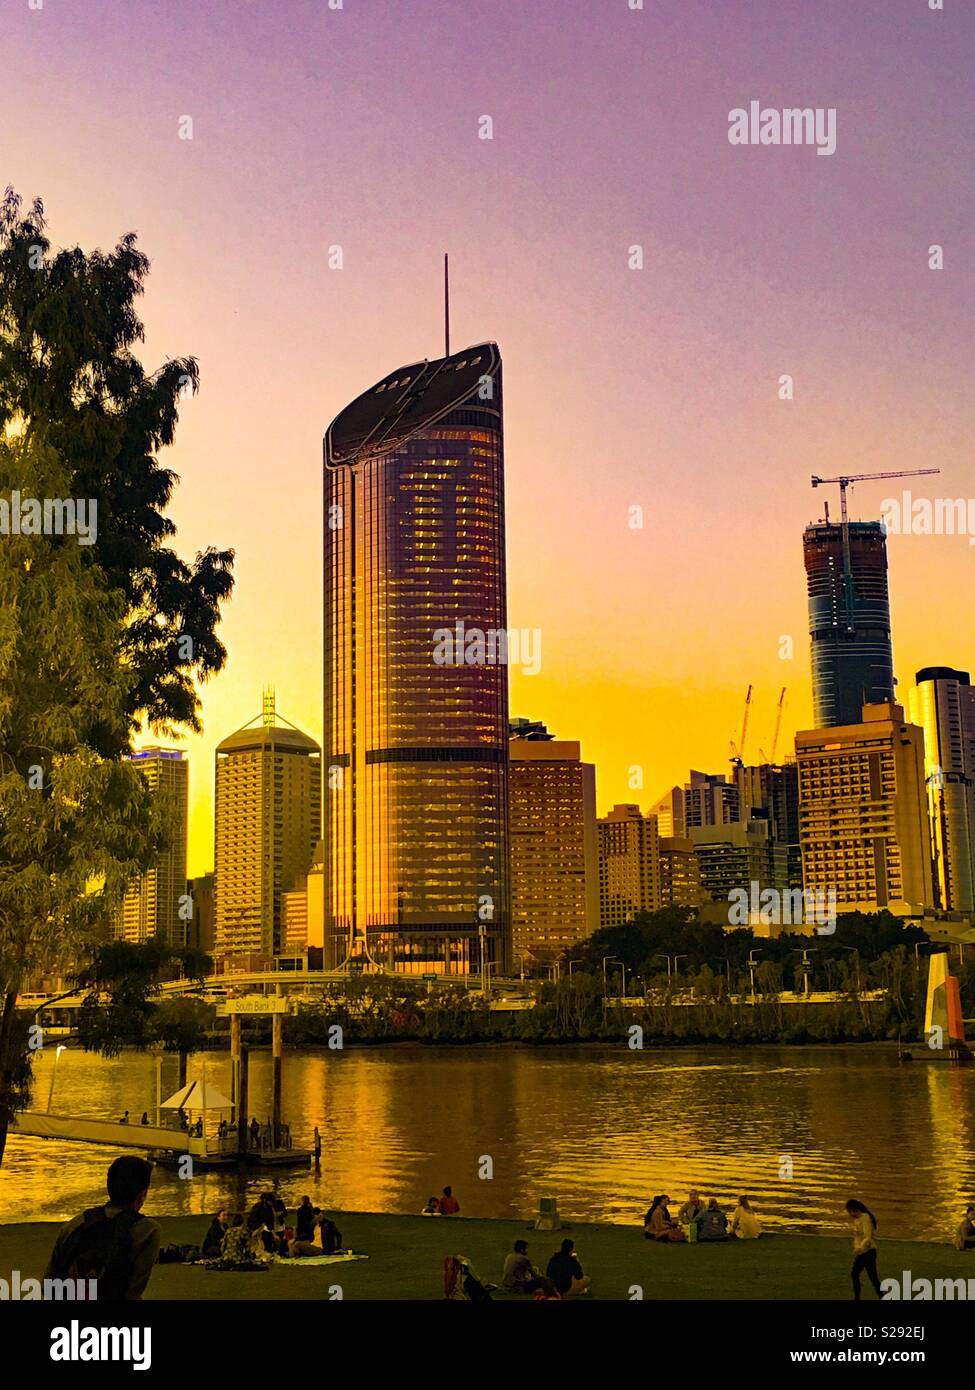 Brisbane City skyline at dusk with river frontage - Stock Image